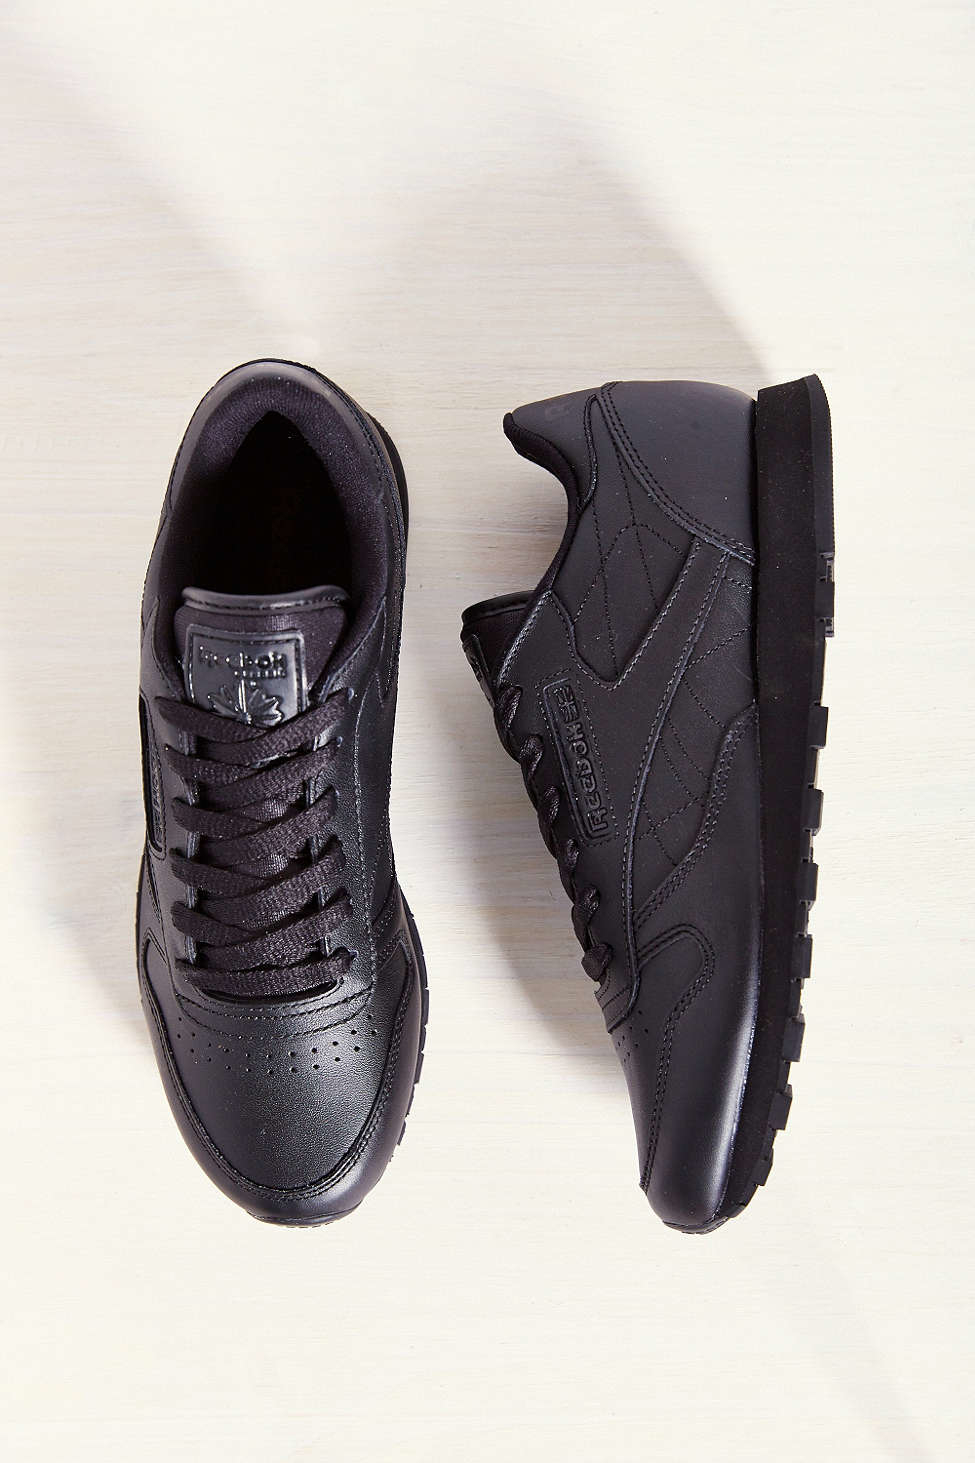 951e2264d37 Gallery. Previously sold at  Urban Outfitters · Women s Reebok Classic  Leather Women s Velcro Sneakers ...